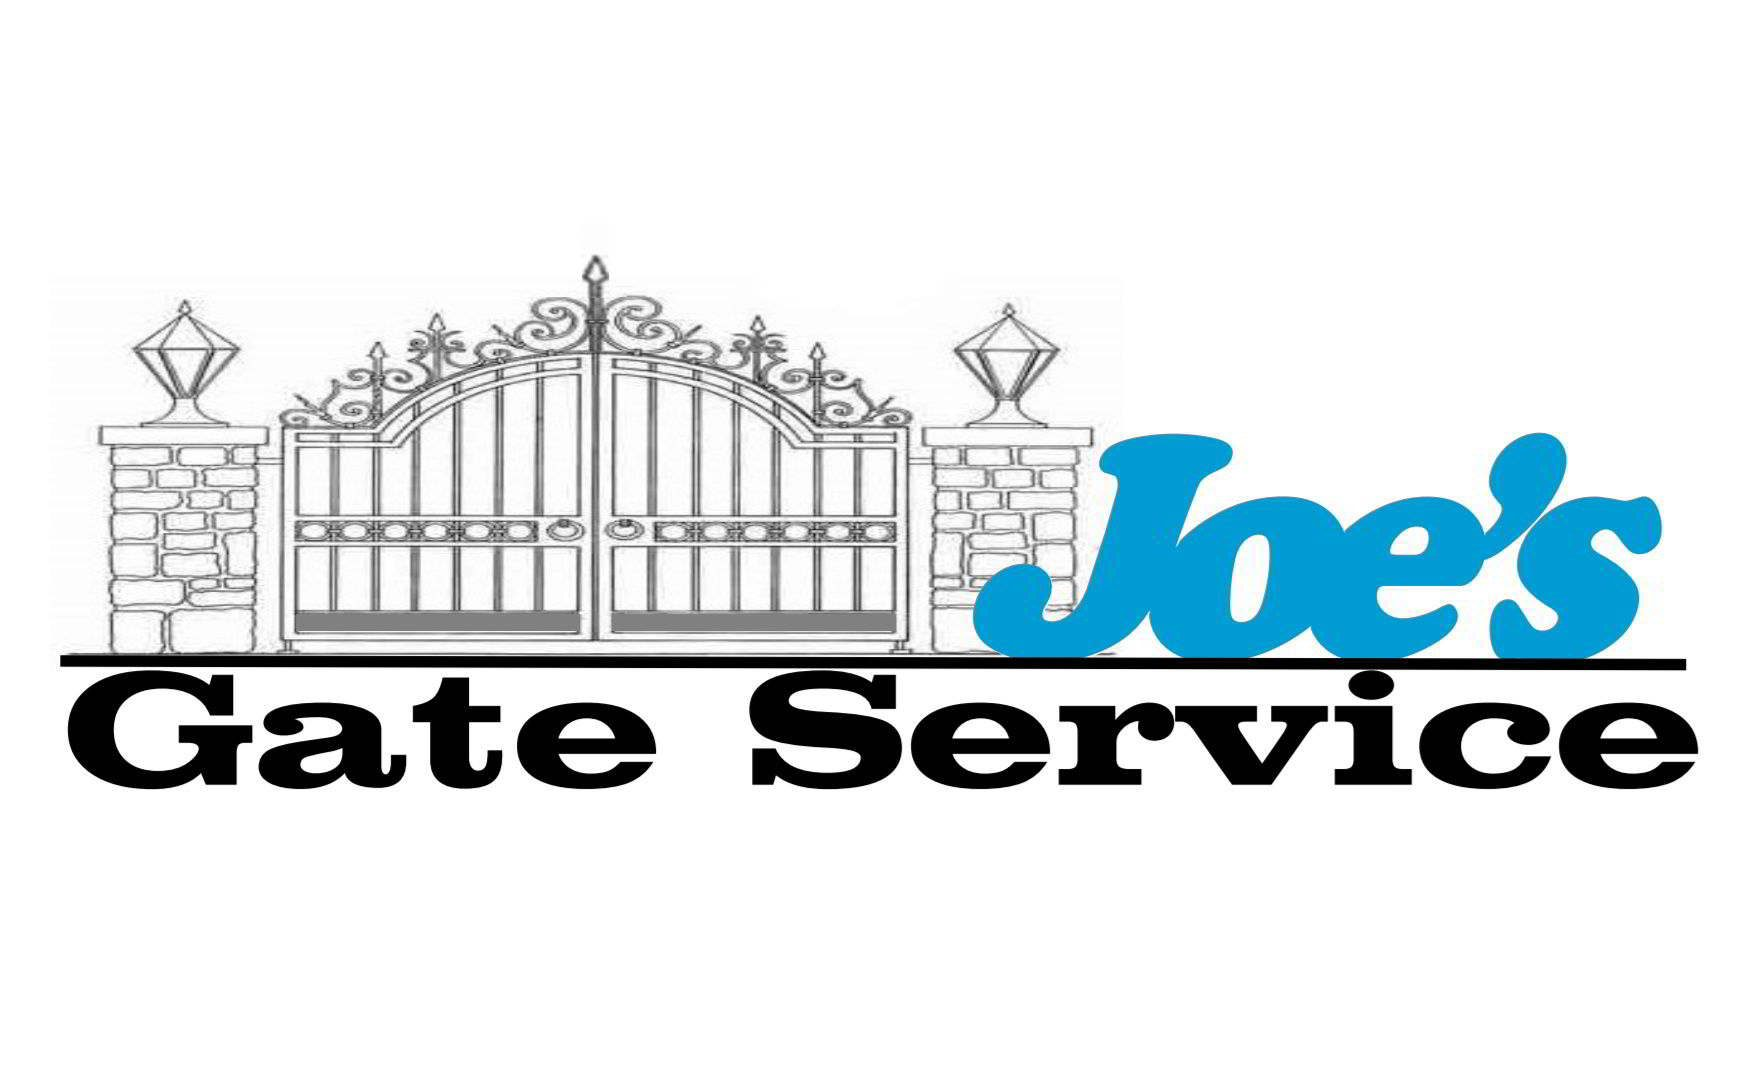 Joe's Gate Service logo